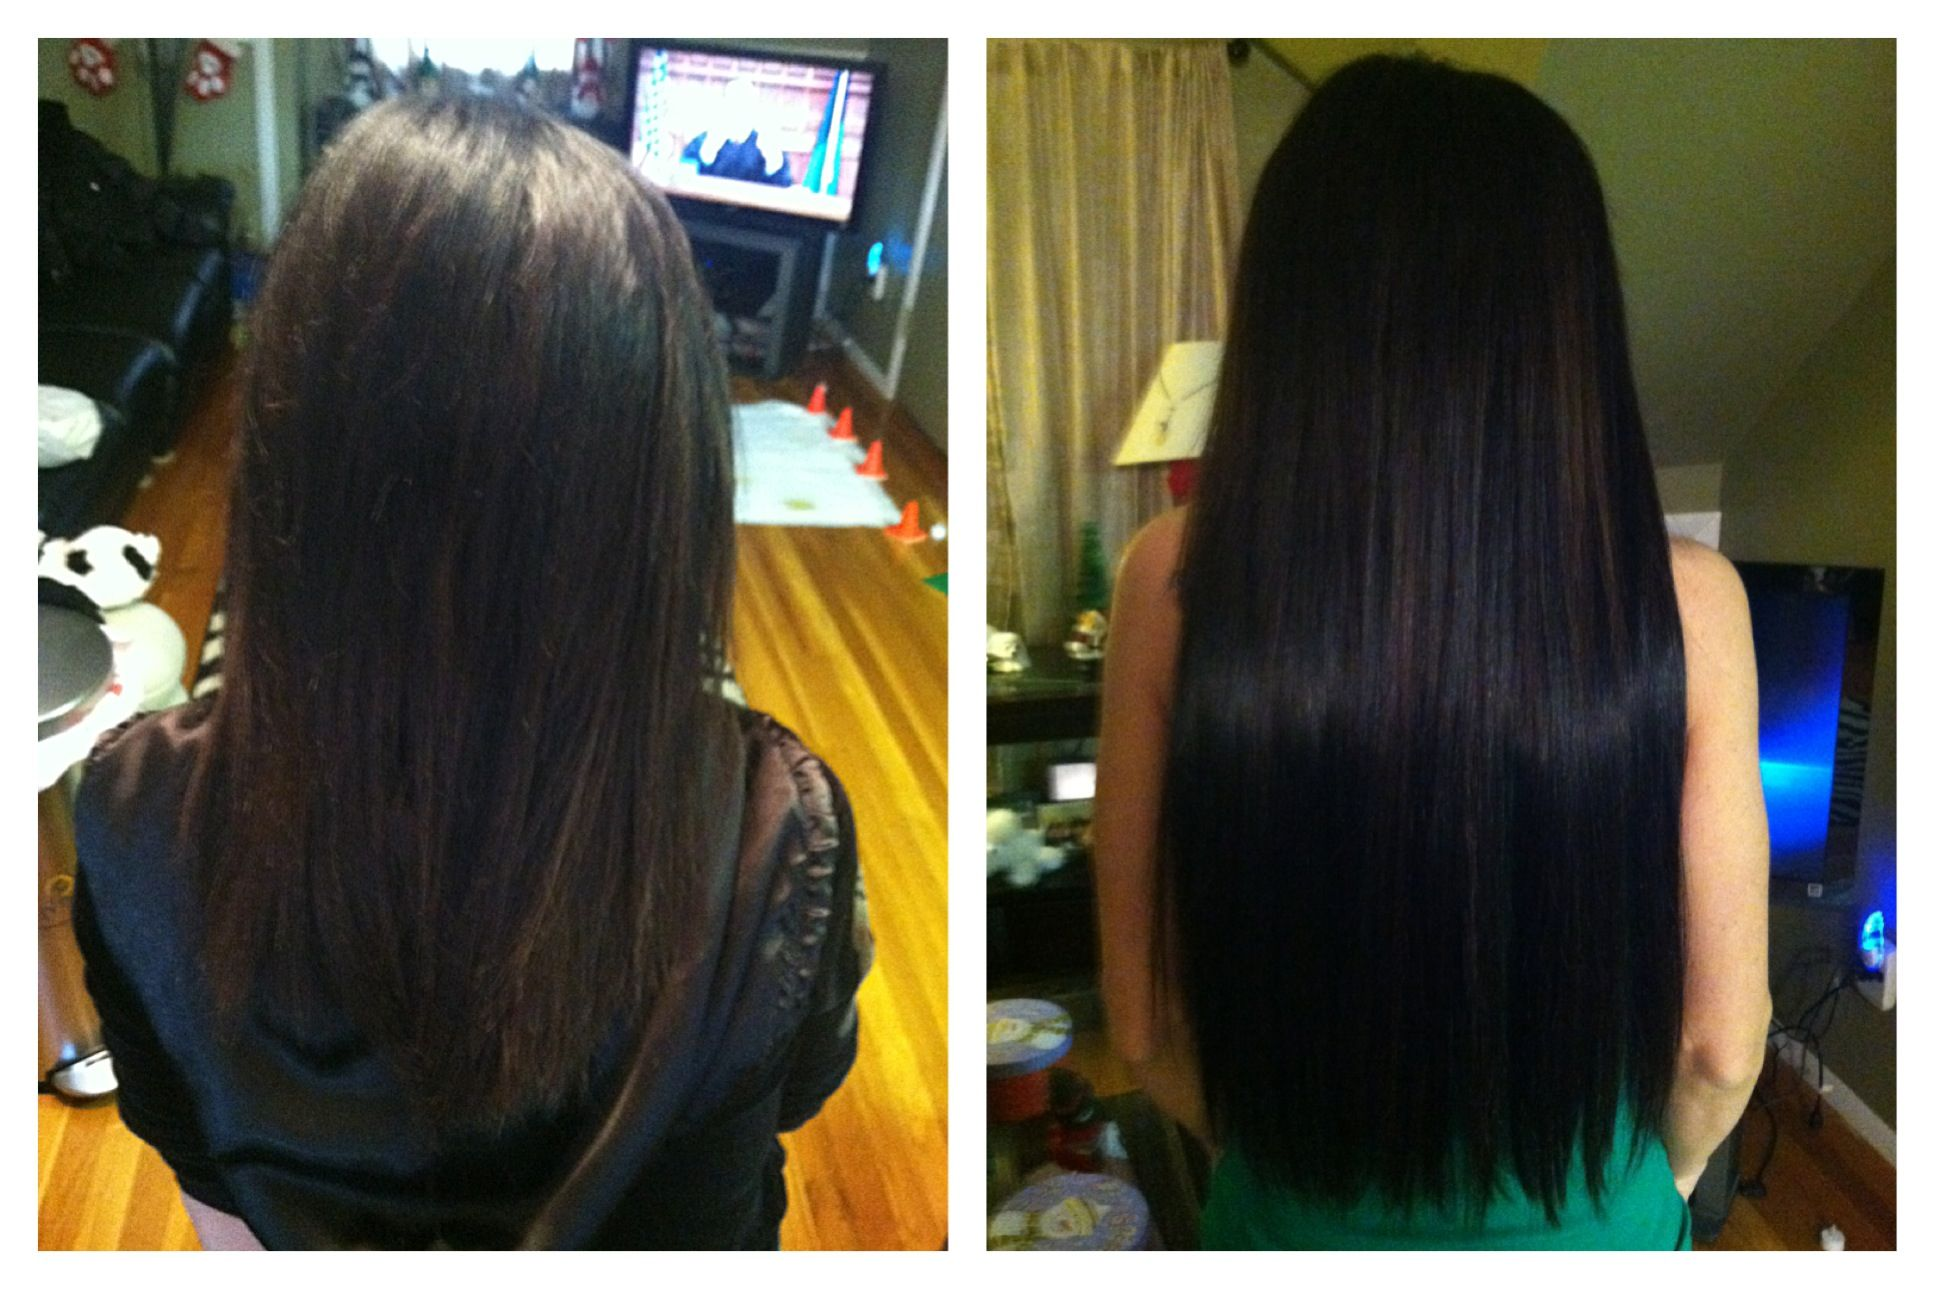 Before and after using beaded extensions in soft black and darkest before and after using beaded extensions in soft black and darkest brown what a makeover island hairmicro bead hair extensionshair specialistlong pmusecretfo Gallery